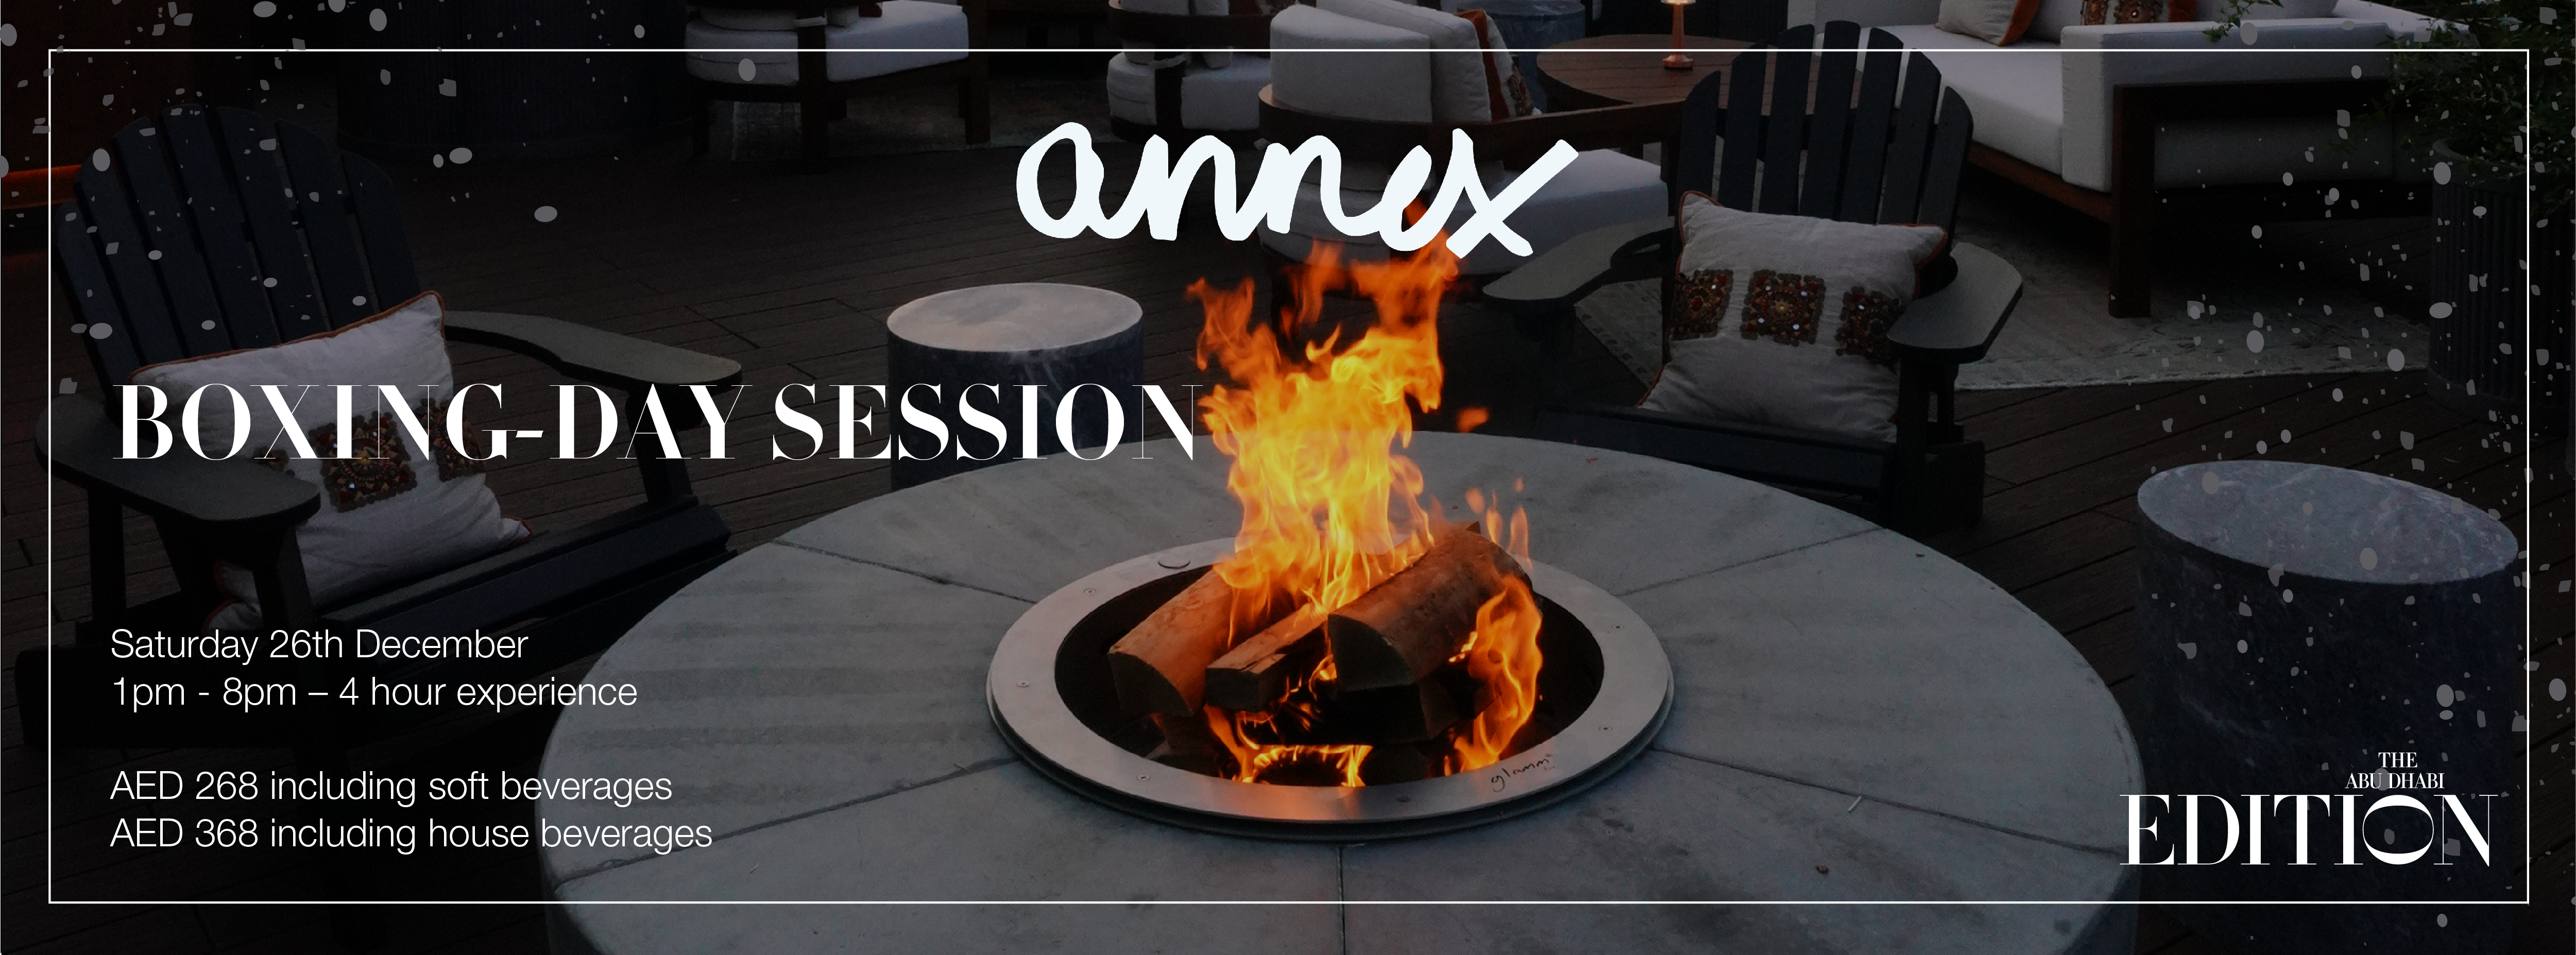 ANNEX Boxing-day Session